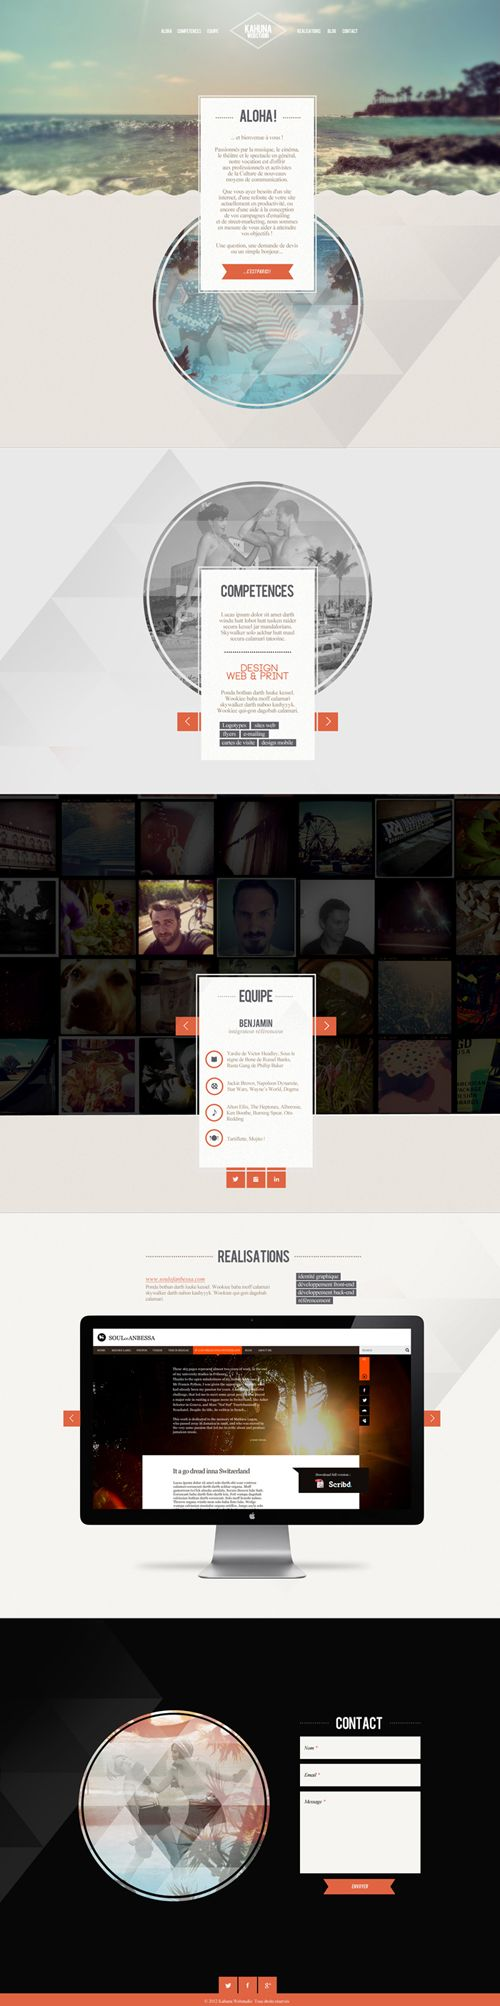 | #webdesign #it #web #design #layout #userinterface #website #webdesign < repinned by www.BlickeDeeler.de